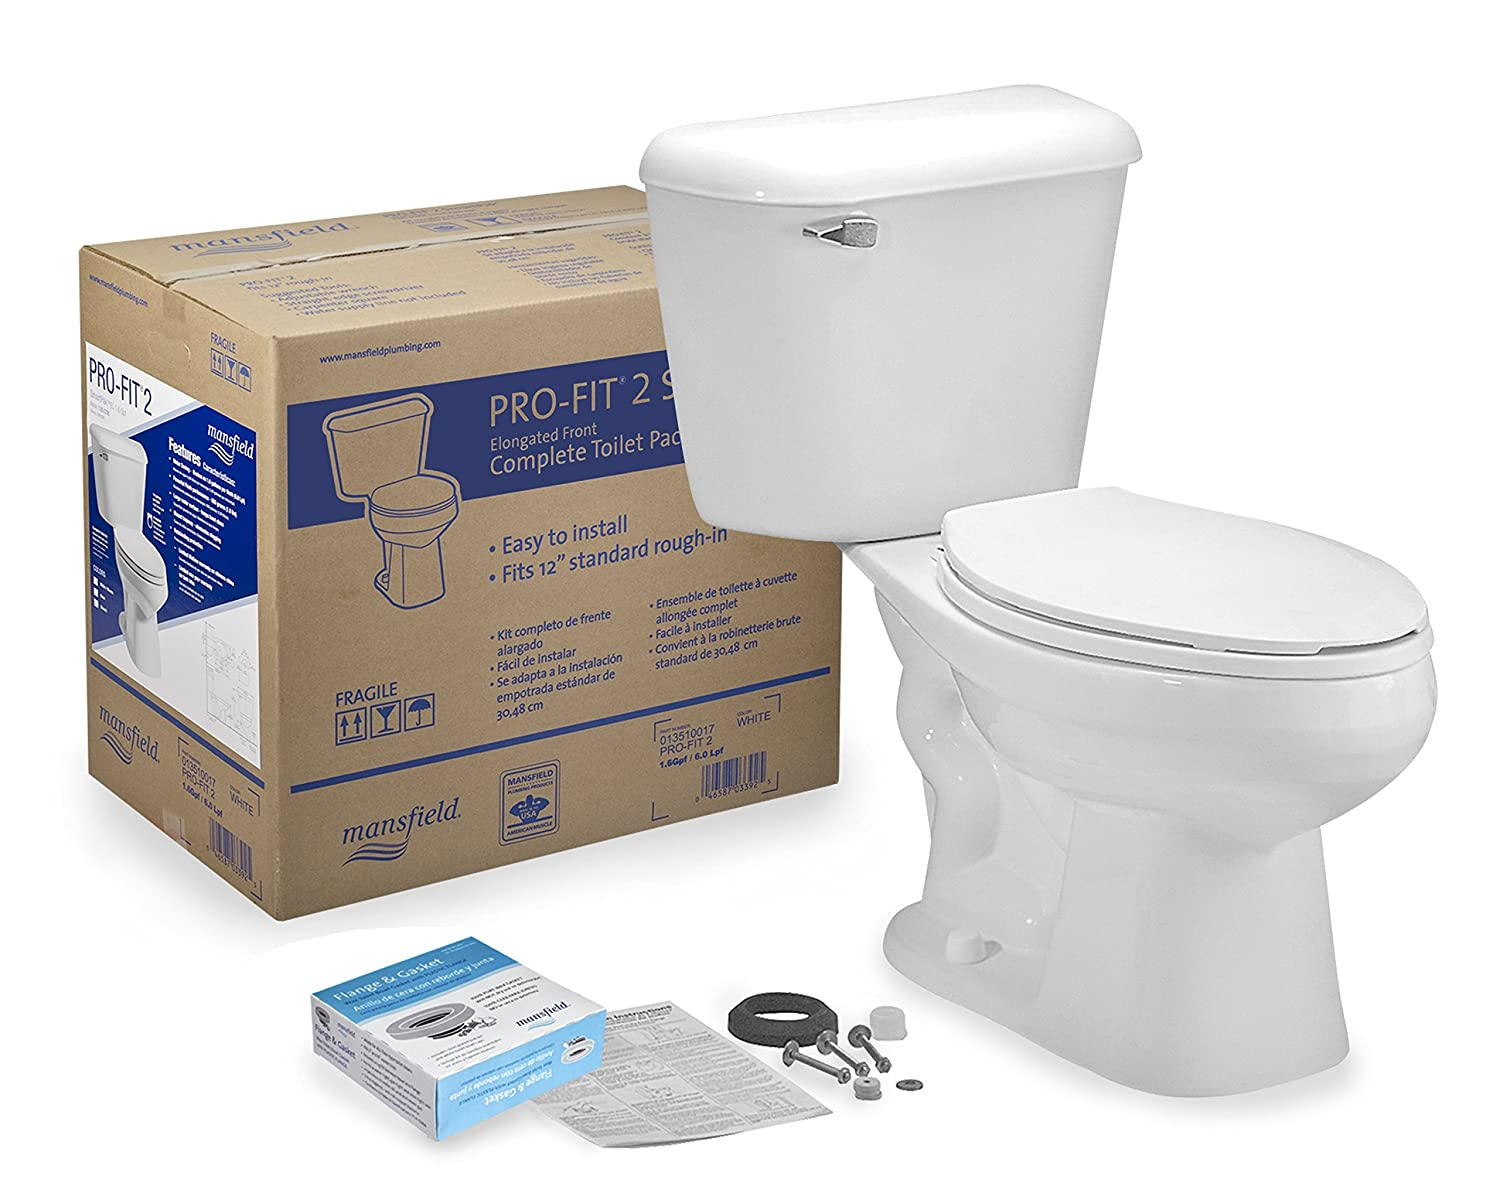 mansfield plumbing products 135ctk profit2 toilet bx kit two piece toilets amazoncom